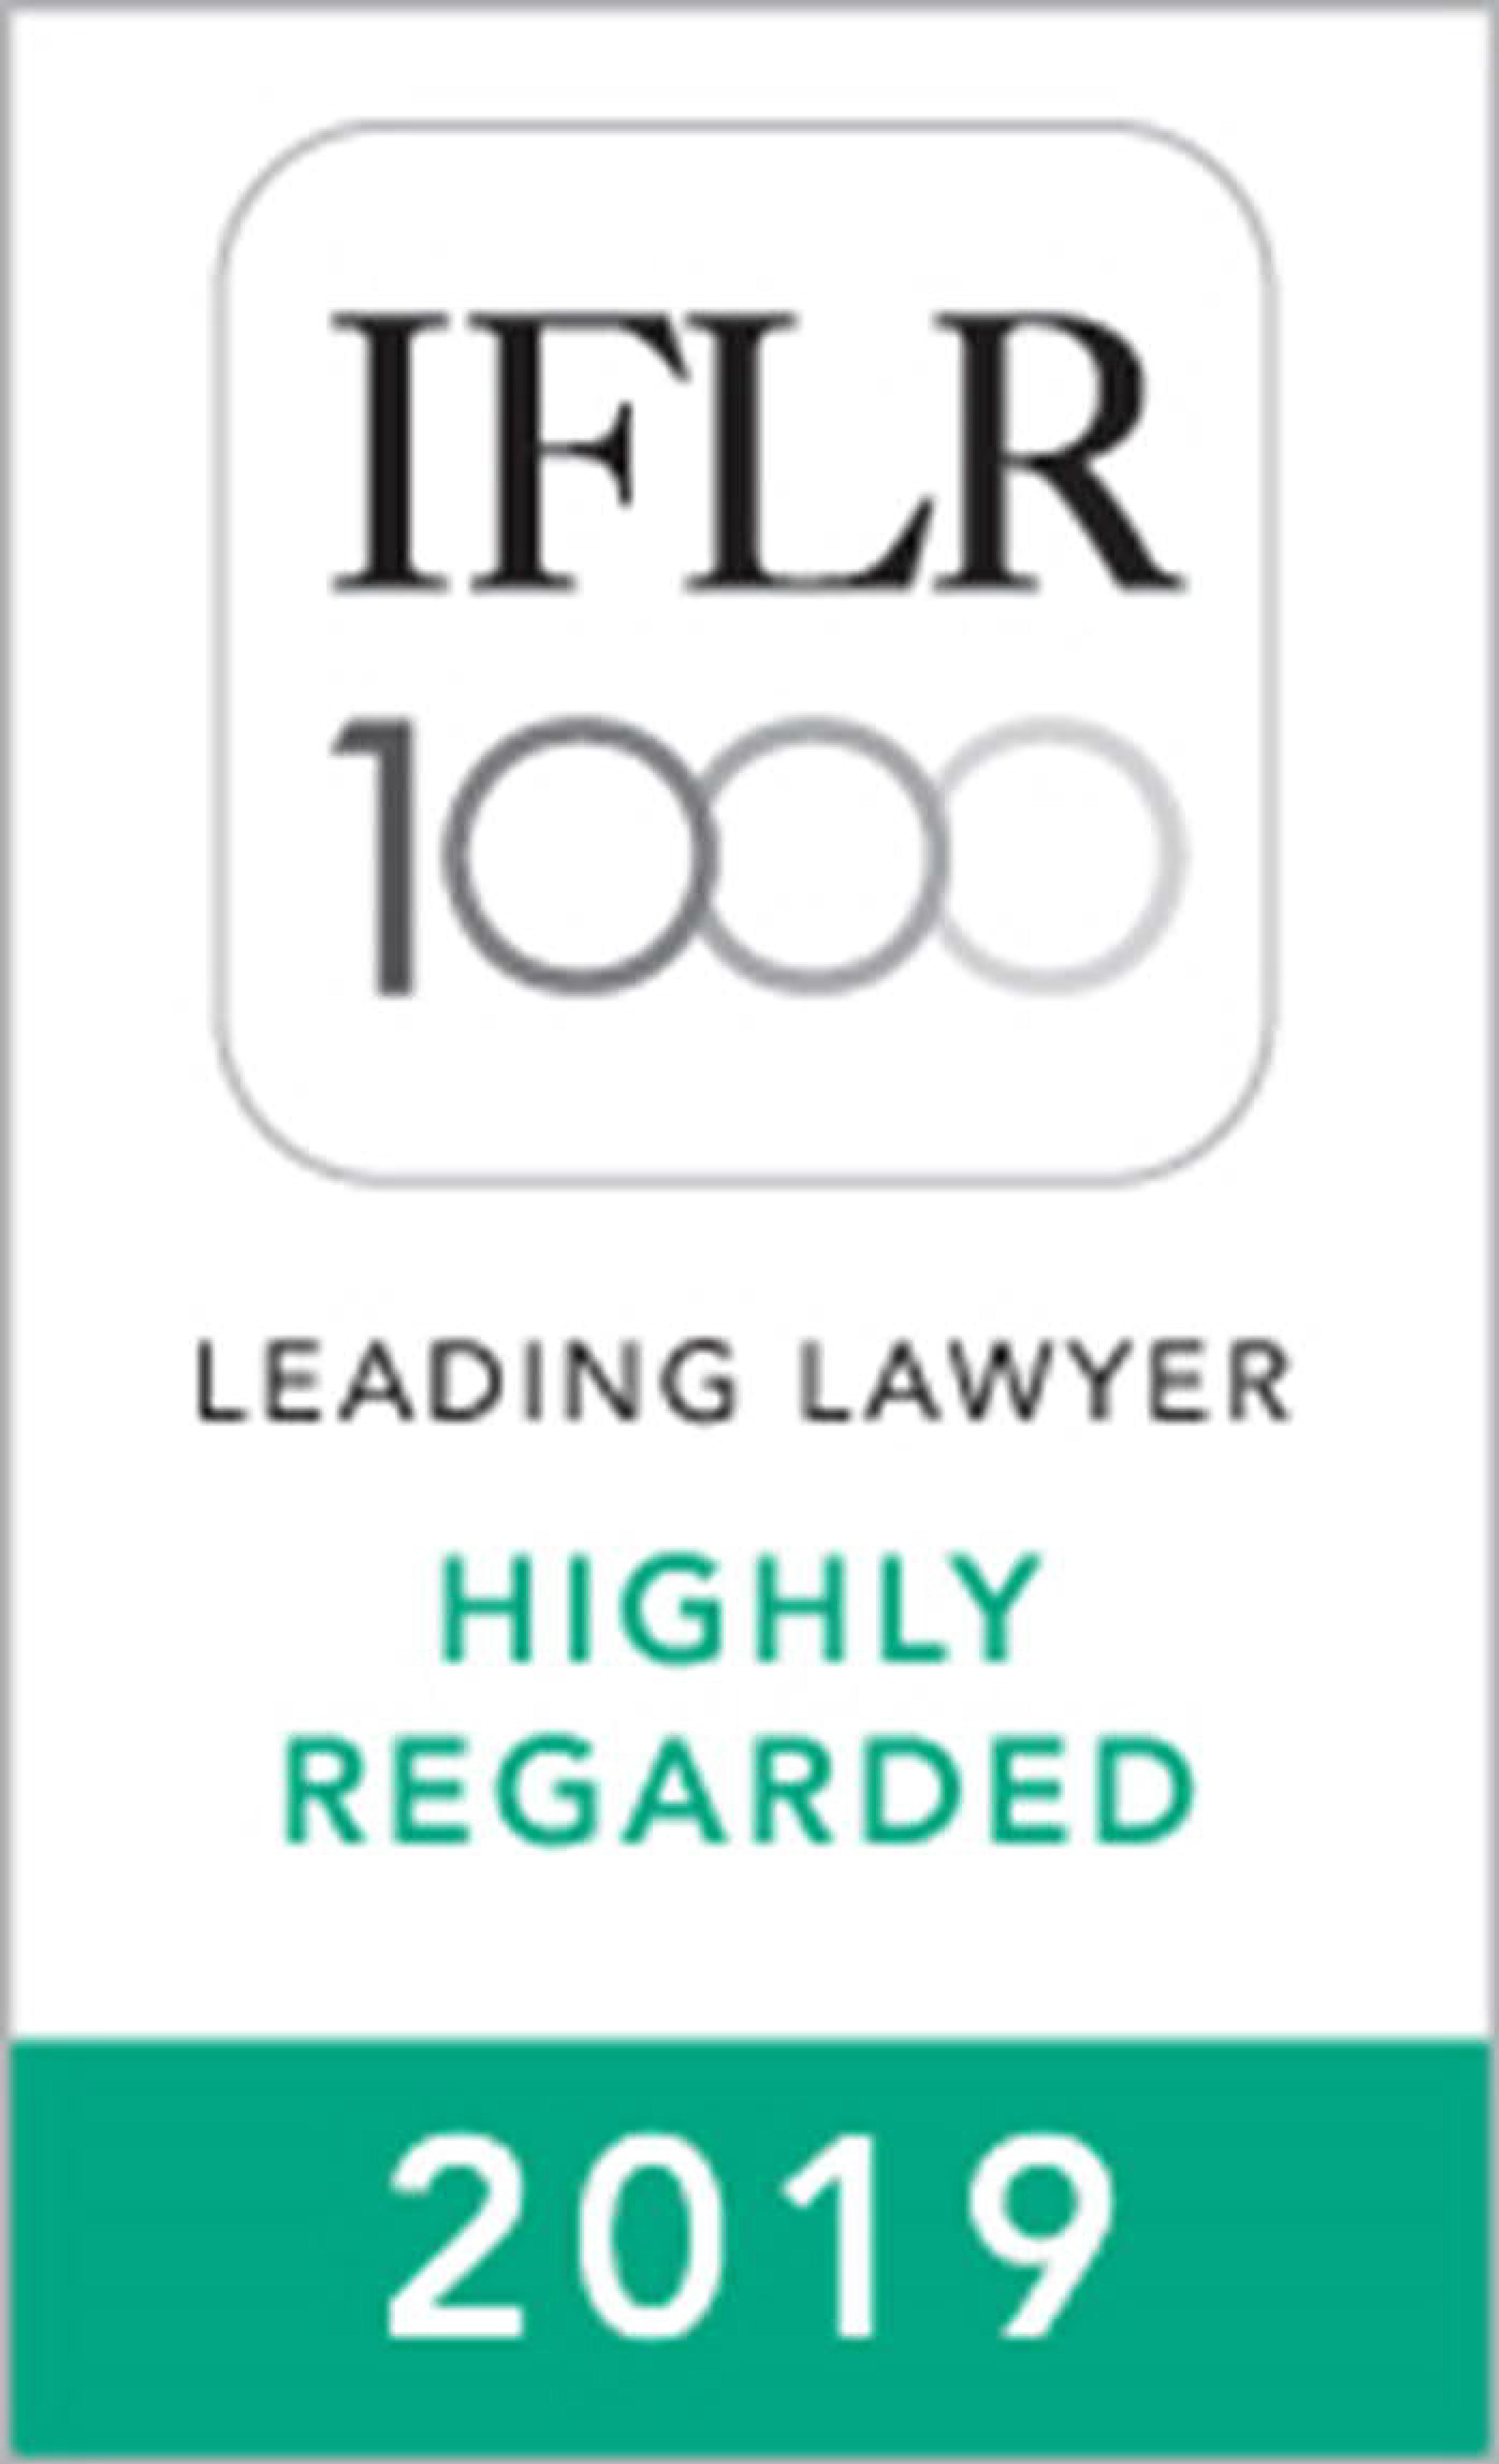 Recognised as Highly Regarded Leading Lawyer in Financial & Corporate Law by IFLR1000, LC Lawyers LLP, Rossana Chu, 2019